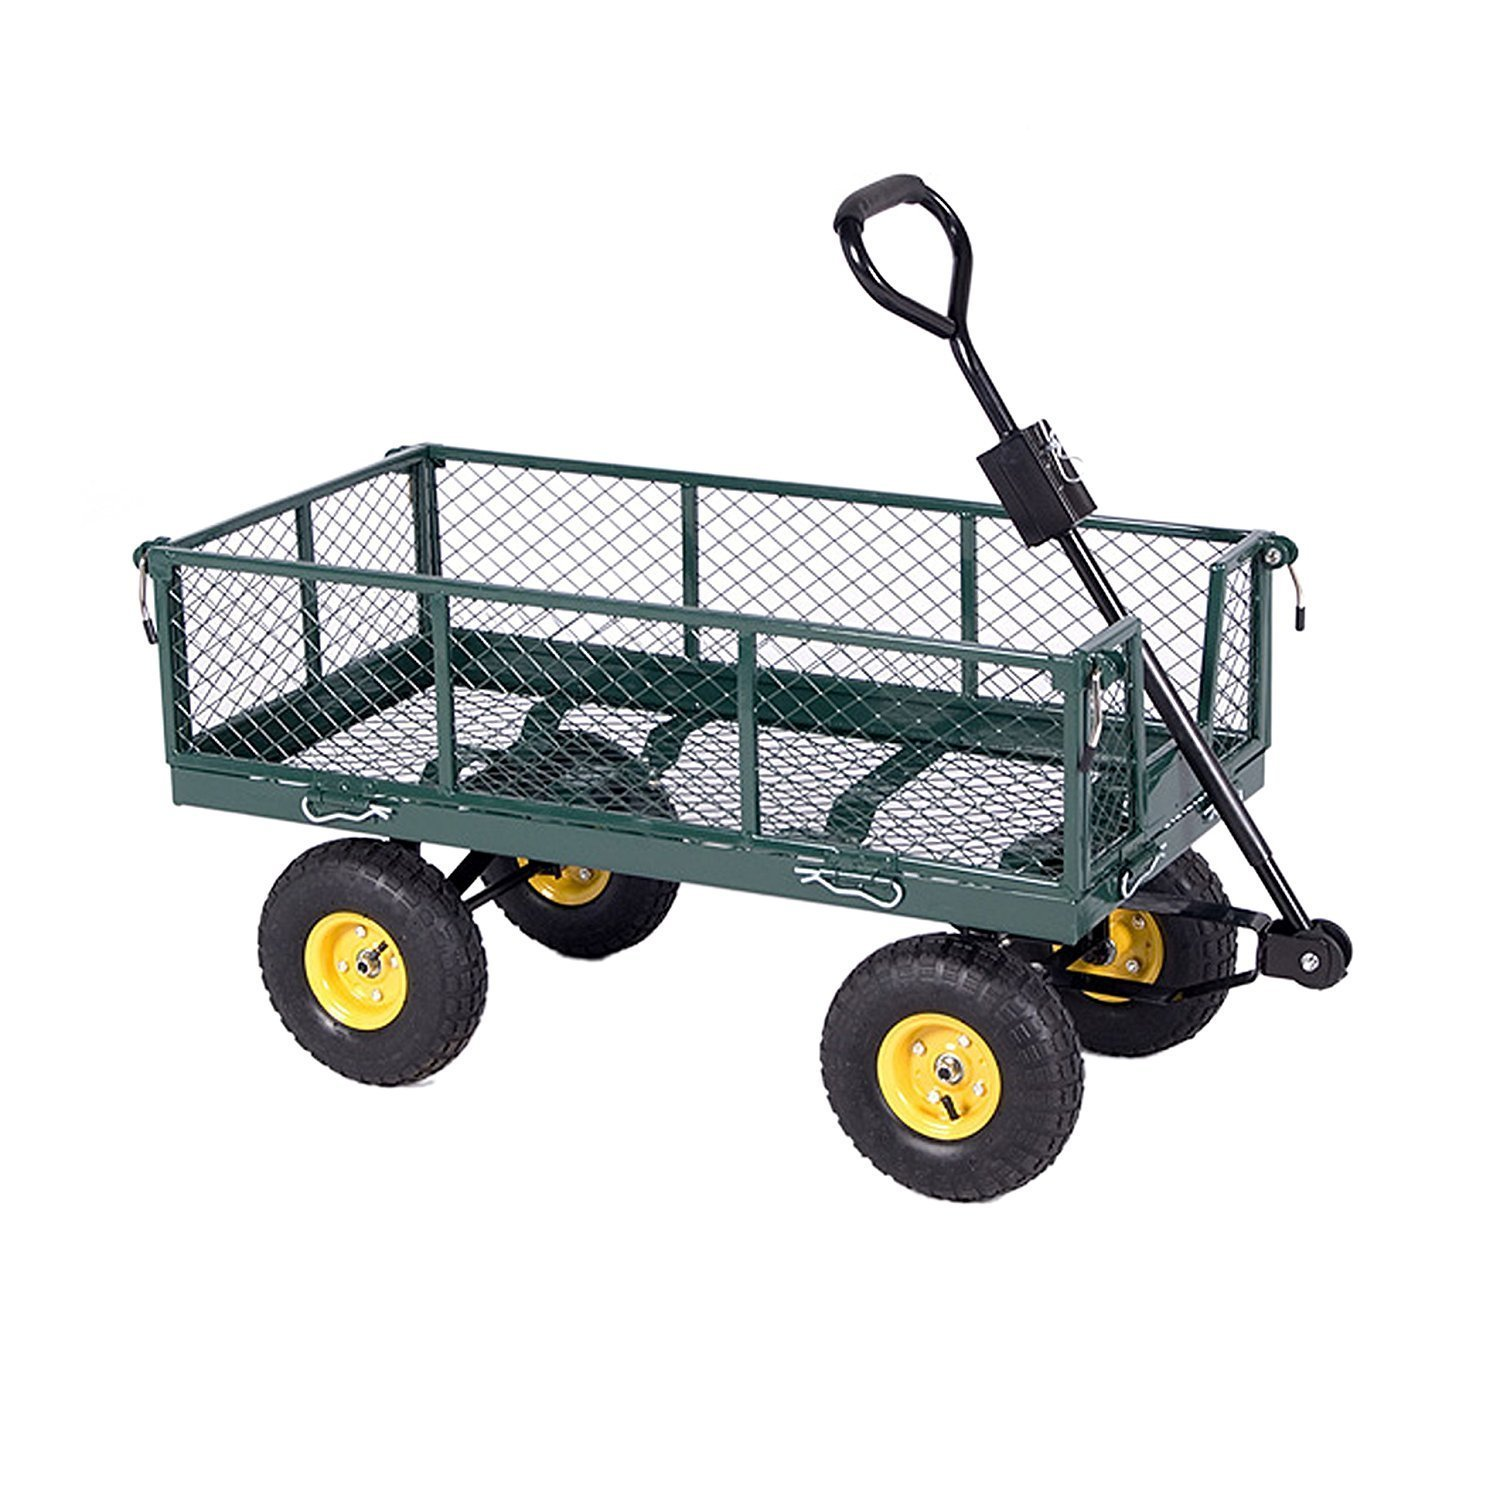 Tractor Supply Garden Cart Home Furniture Design